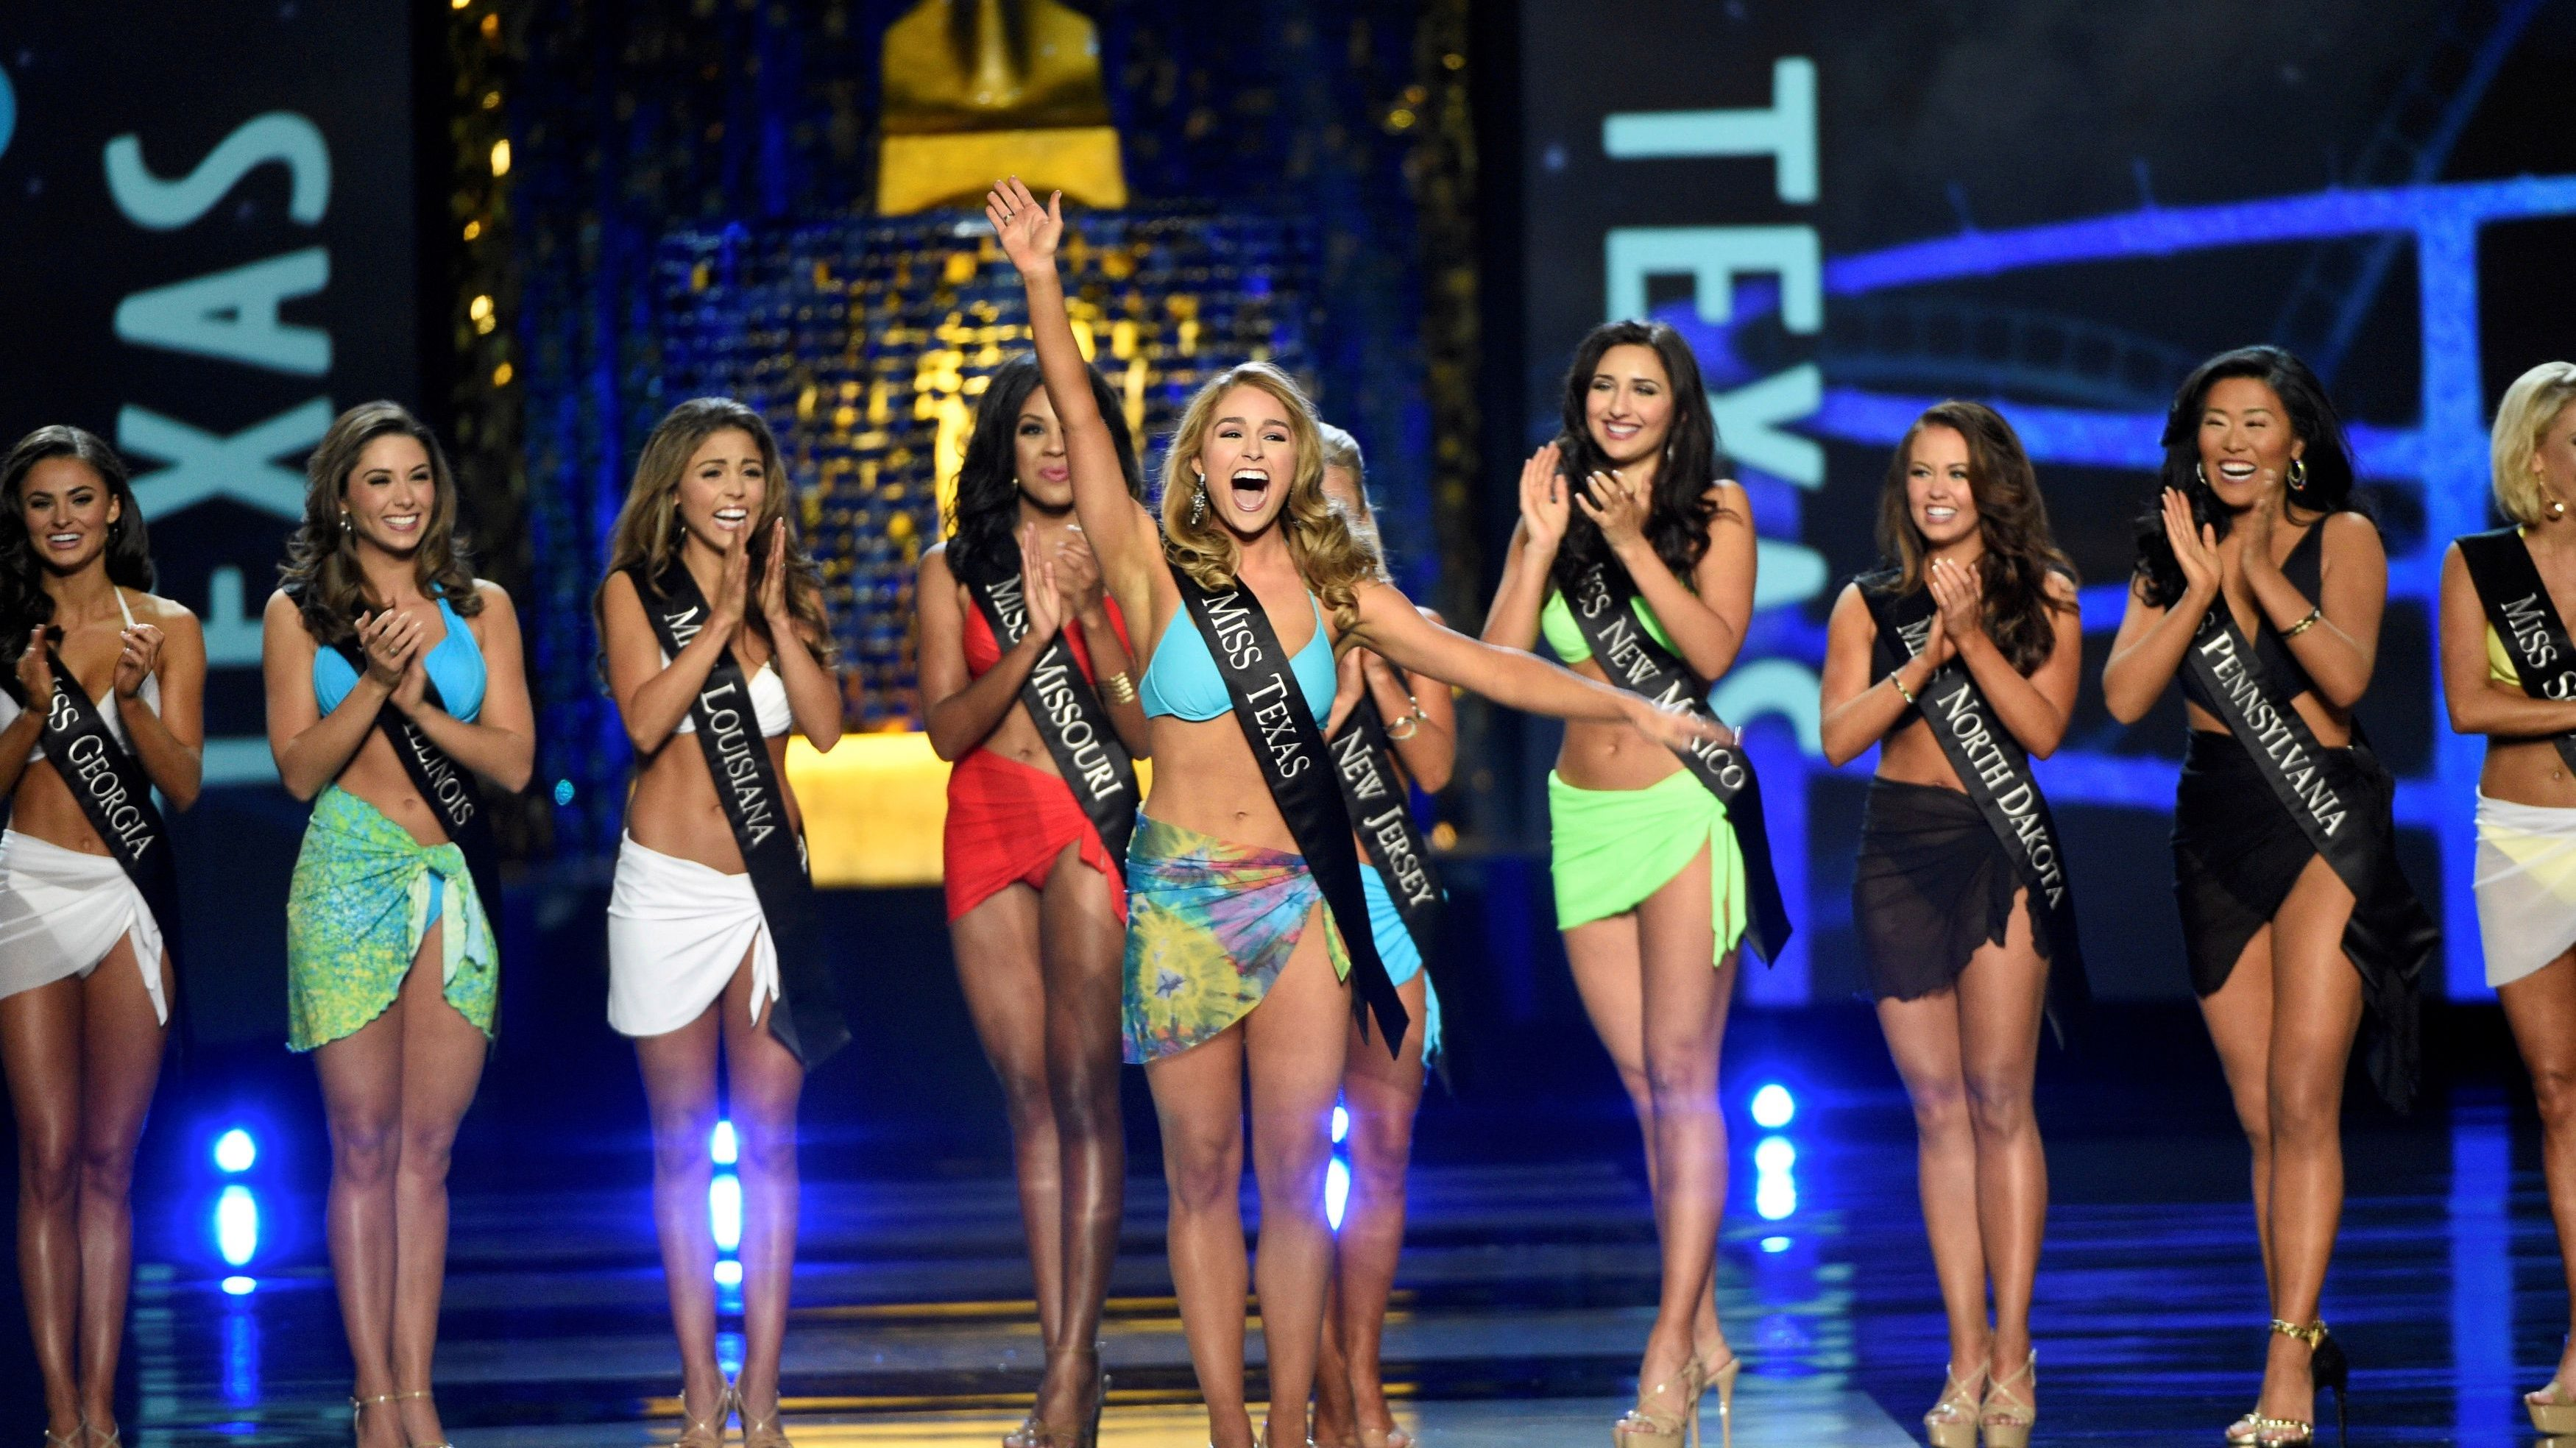 Image result for Miss America beauty pageant